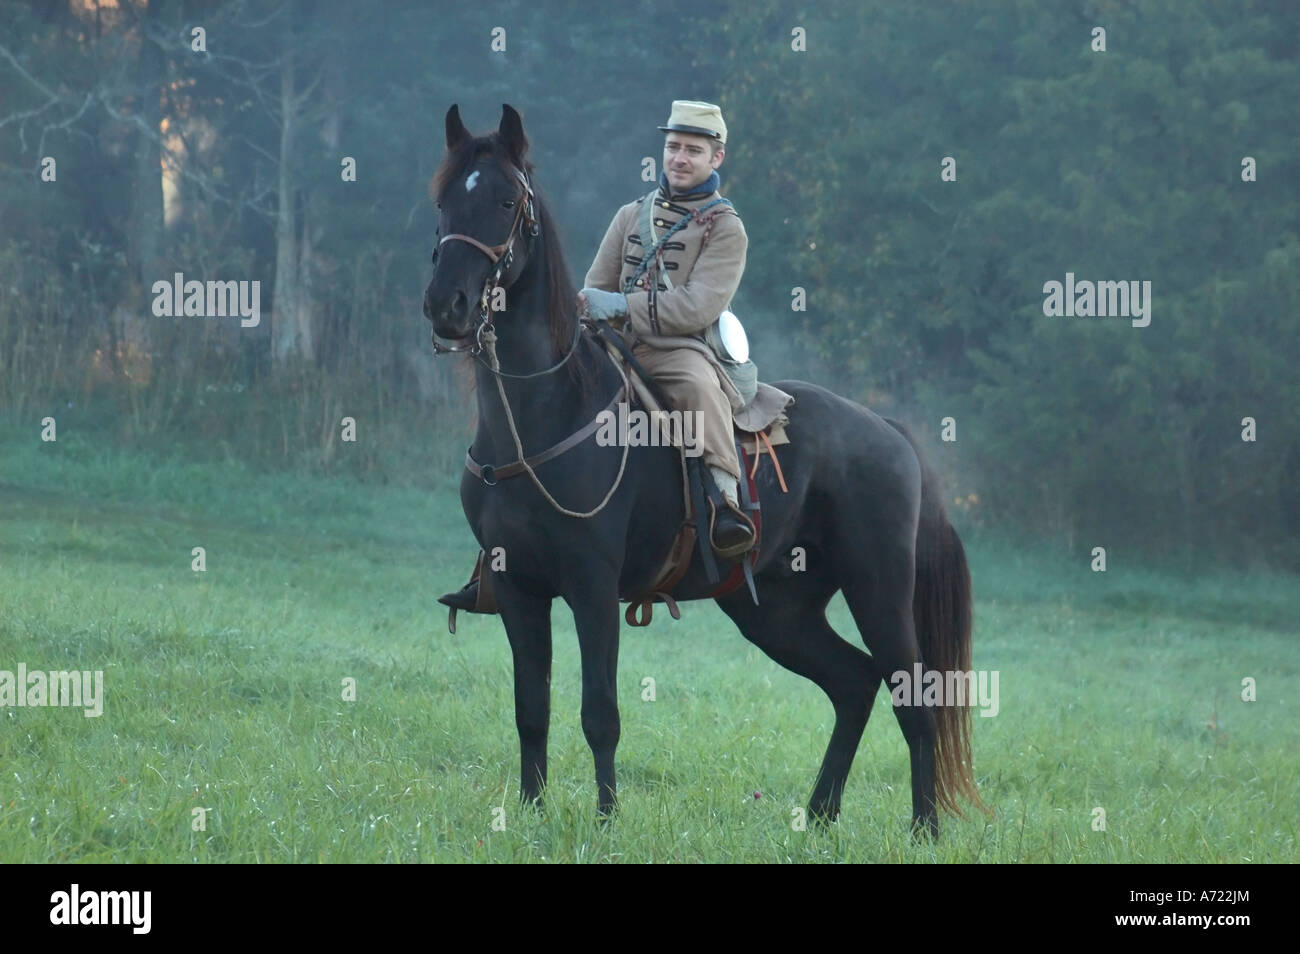 Confederate Cavalry Soldier - Stock Image